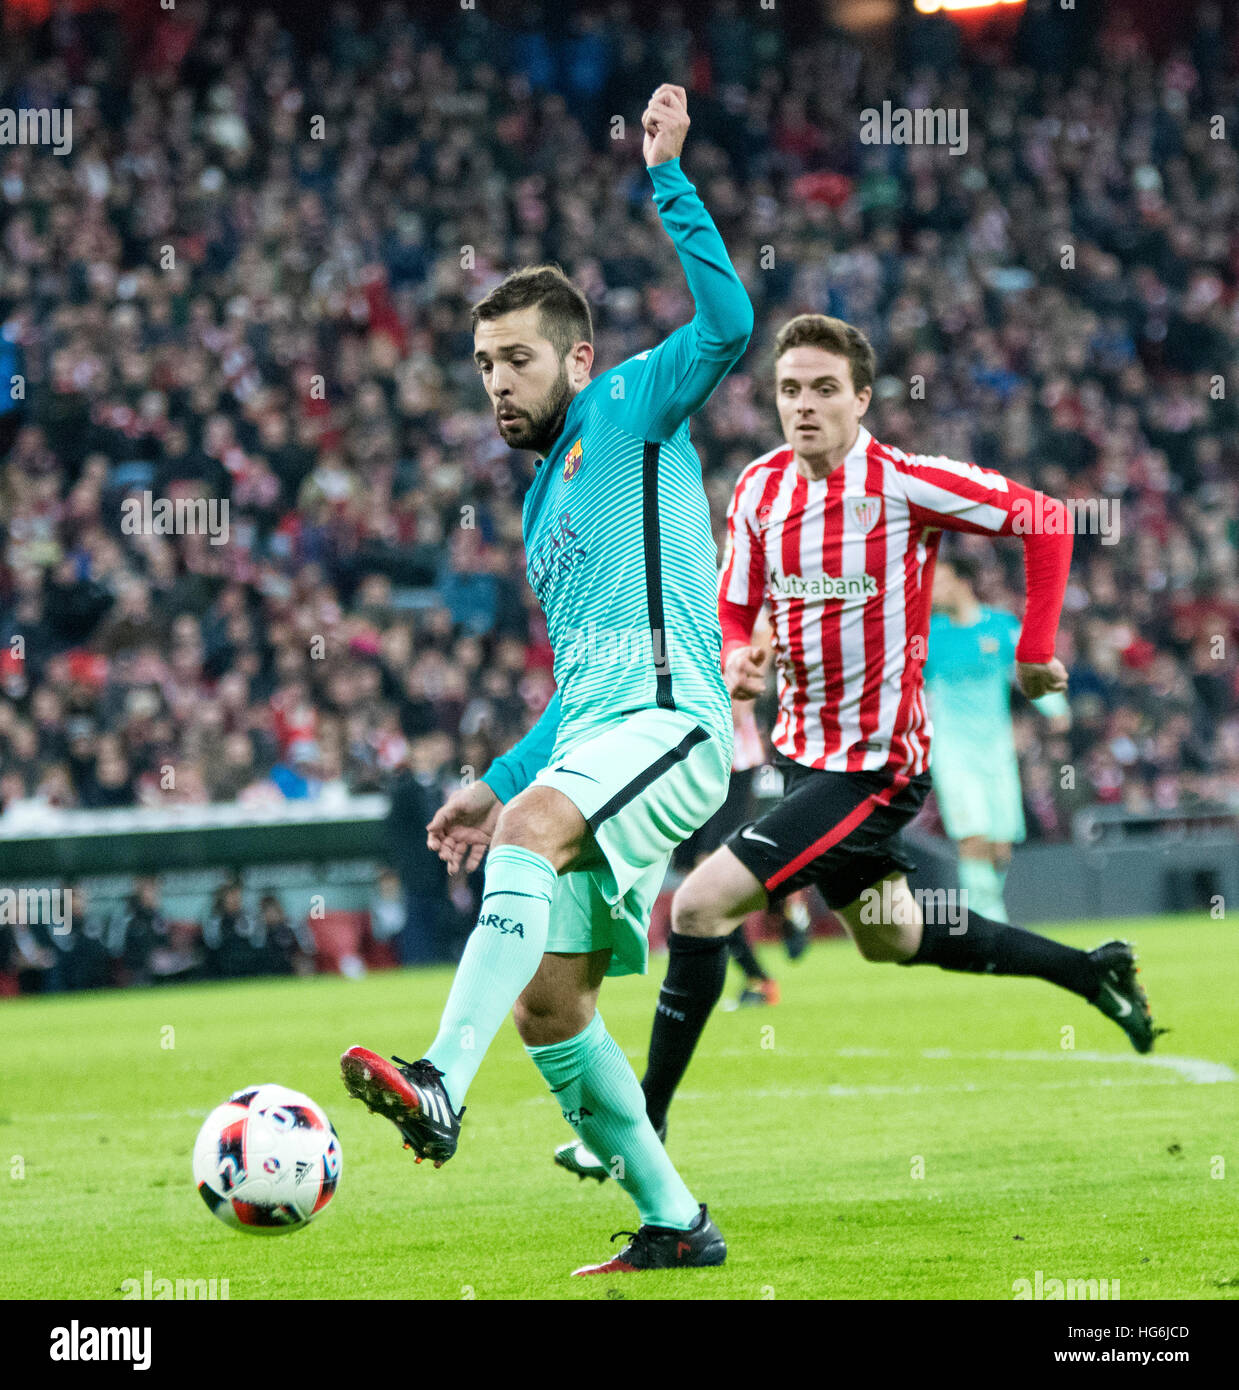 Bilbao, Spain. 5th January, 2017. Jordi Alba (Defender, FC Barcelona) in action during the football match of Spanish - Stock Image